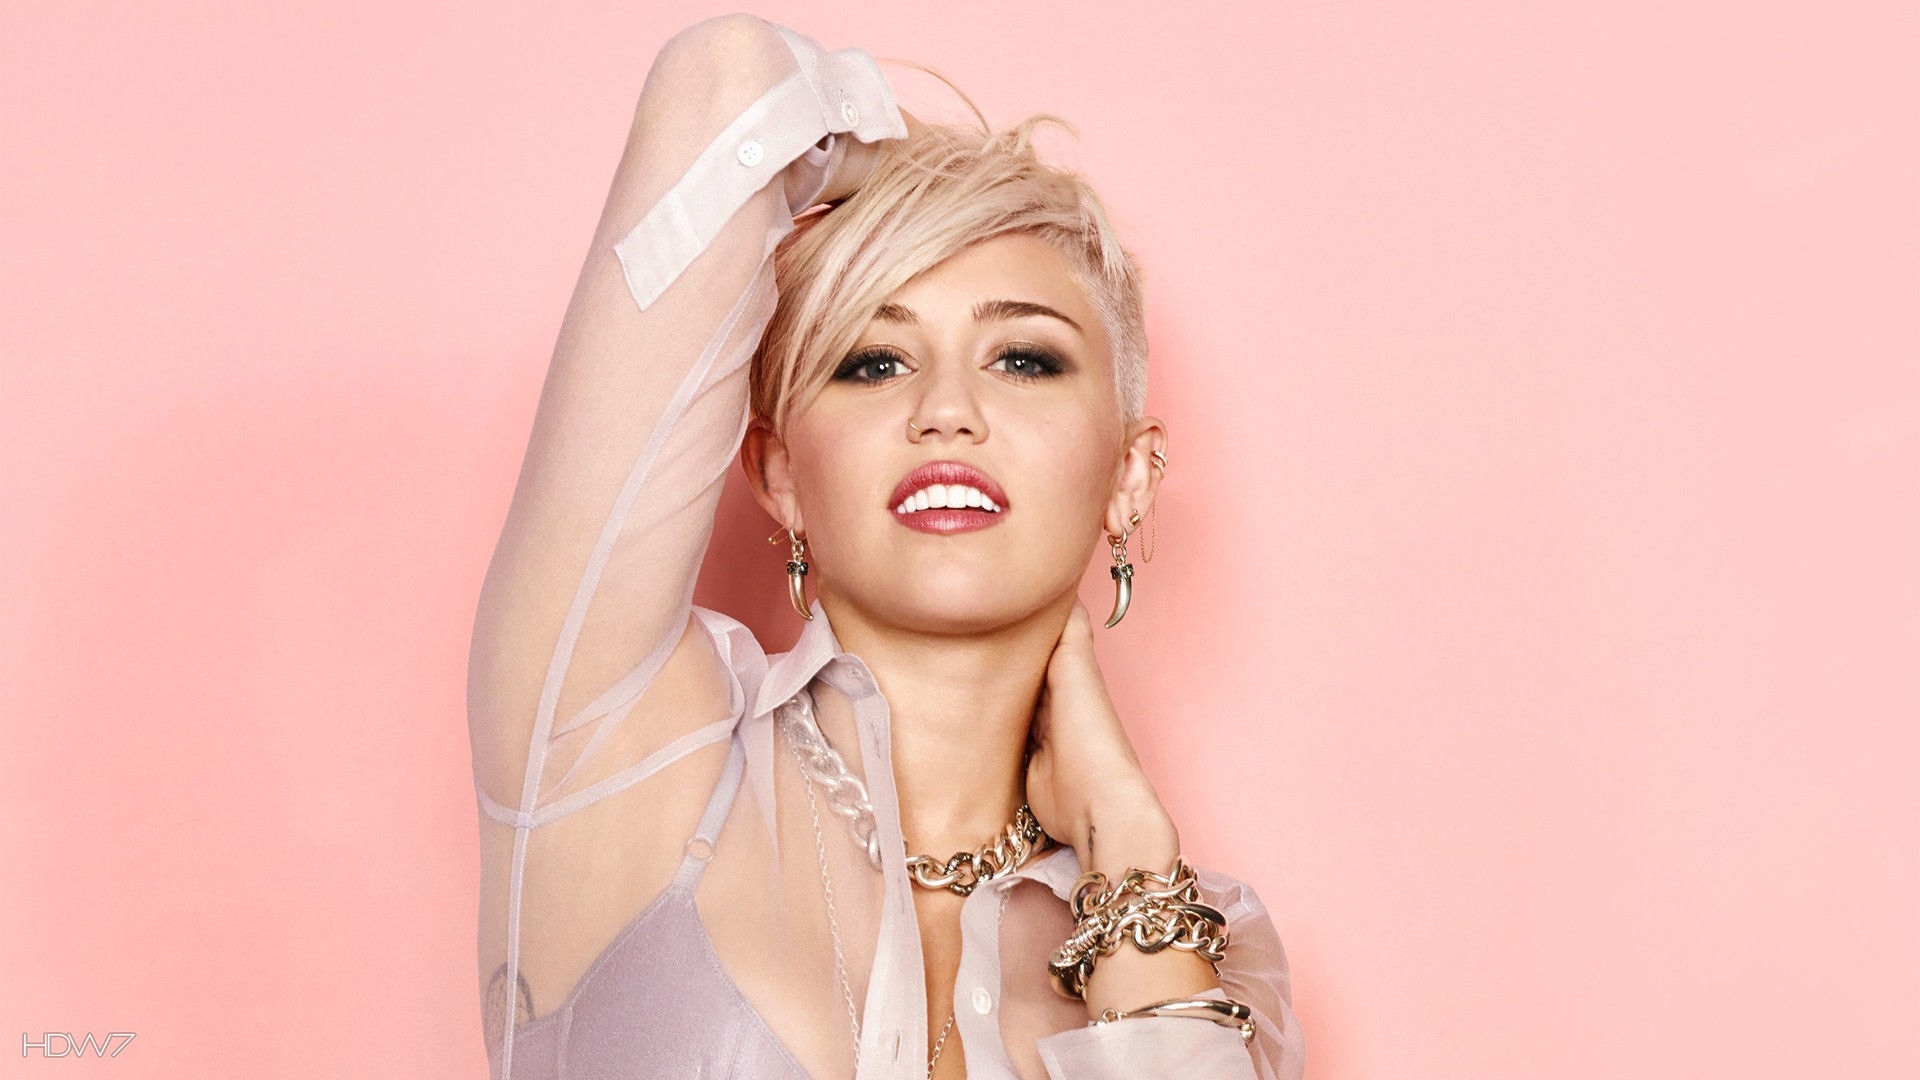 miley cyrus 2013 hd wallpaper